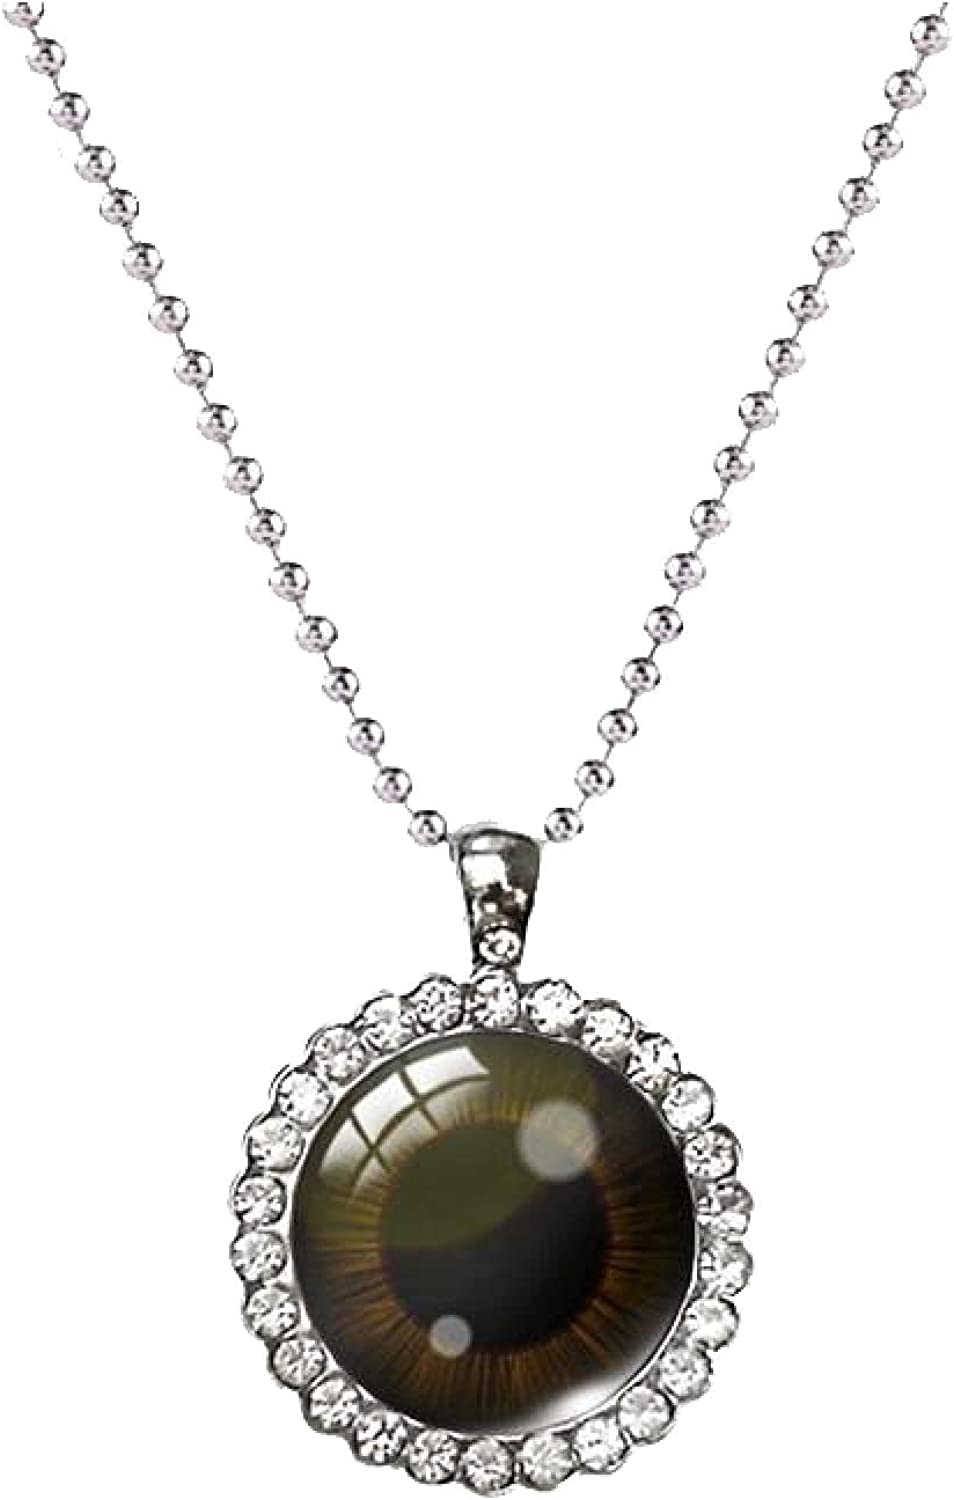 Sale special price Eyes Pendant Necklace Color Eye National uniform free shipping Photo Jewel Art Crystal Pendants